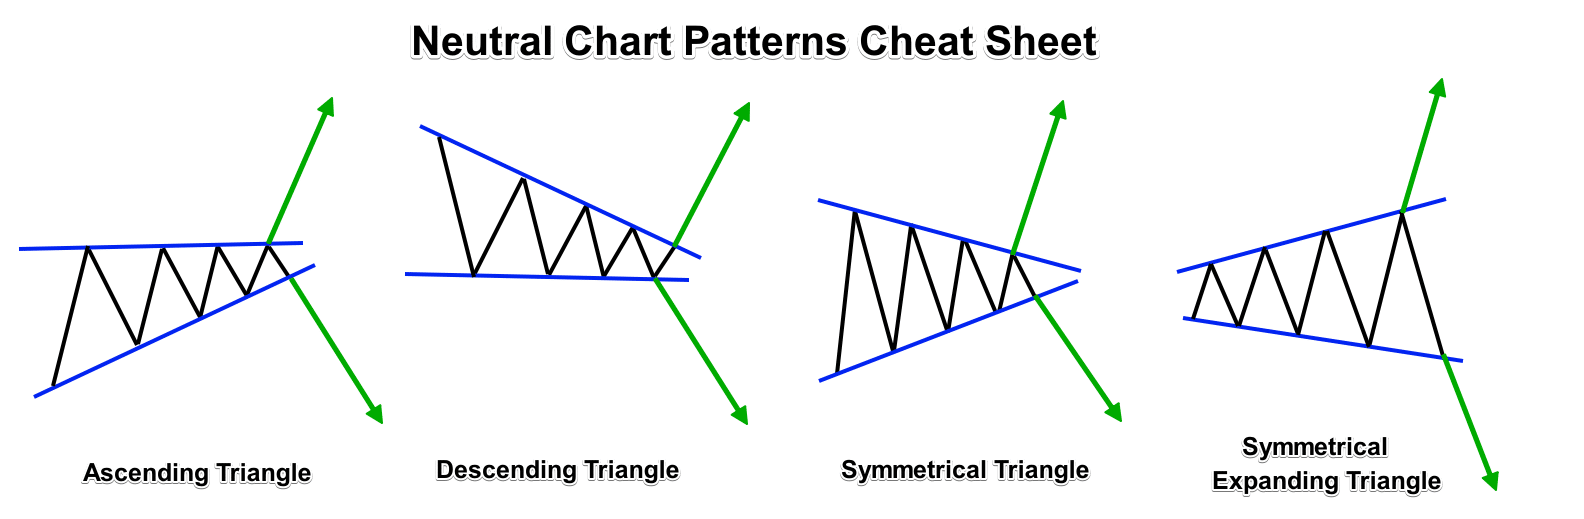 Neutral Forex Chart Patterns Cheat Sheet